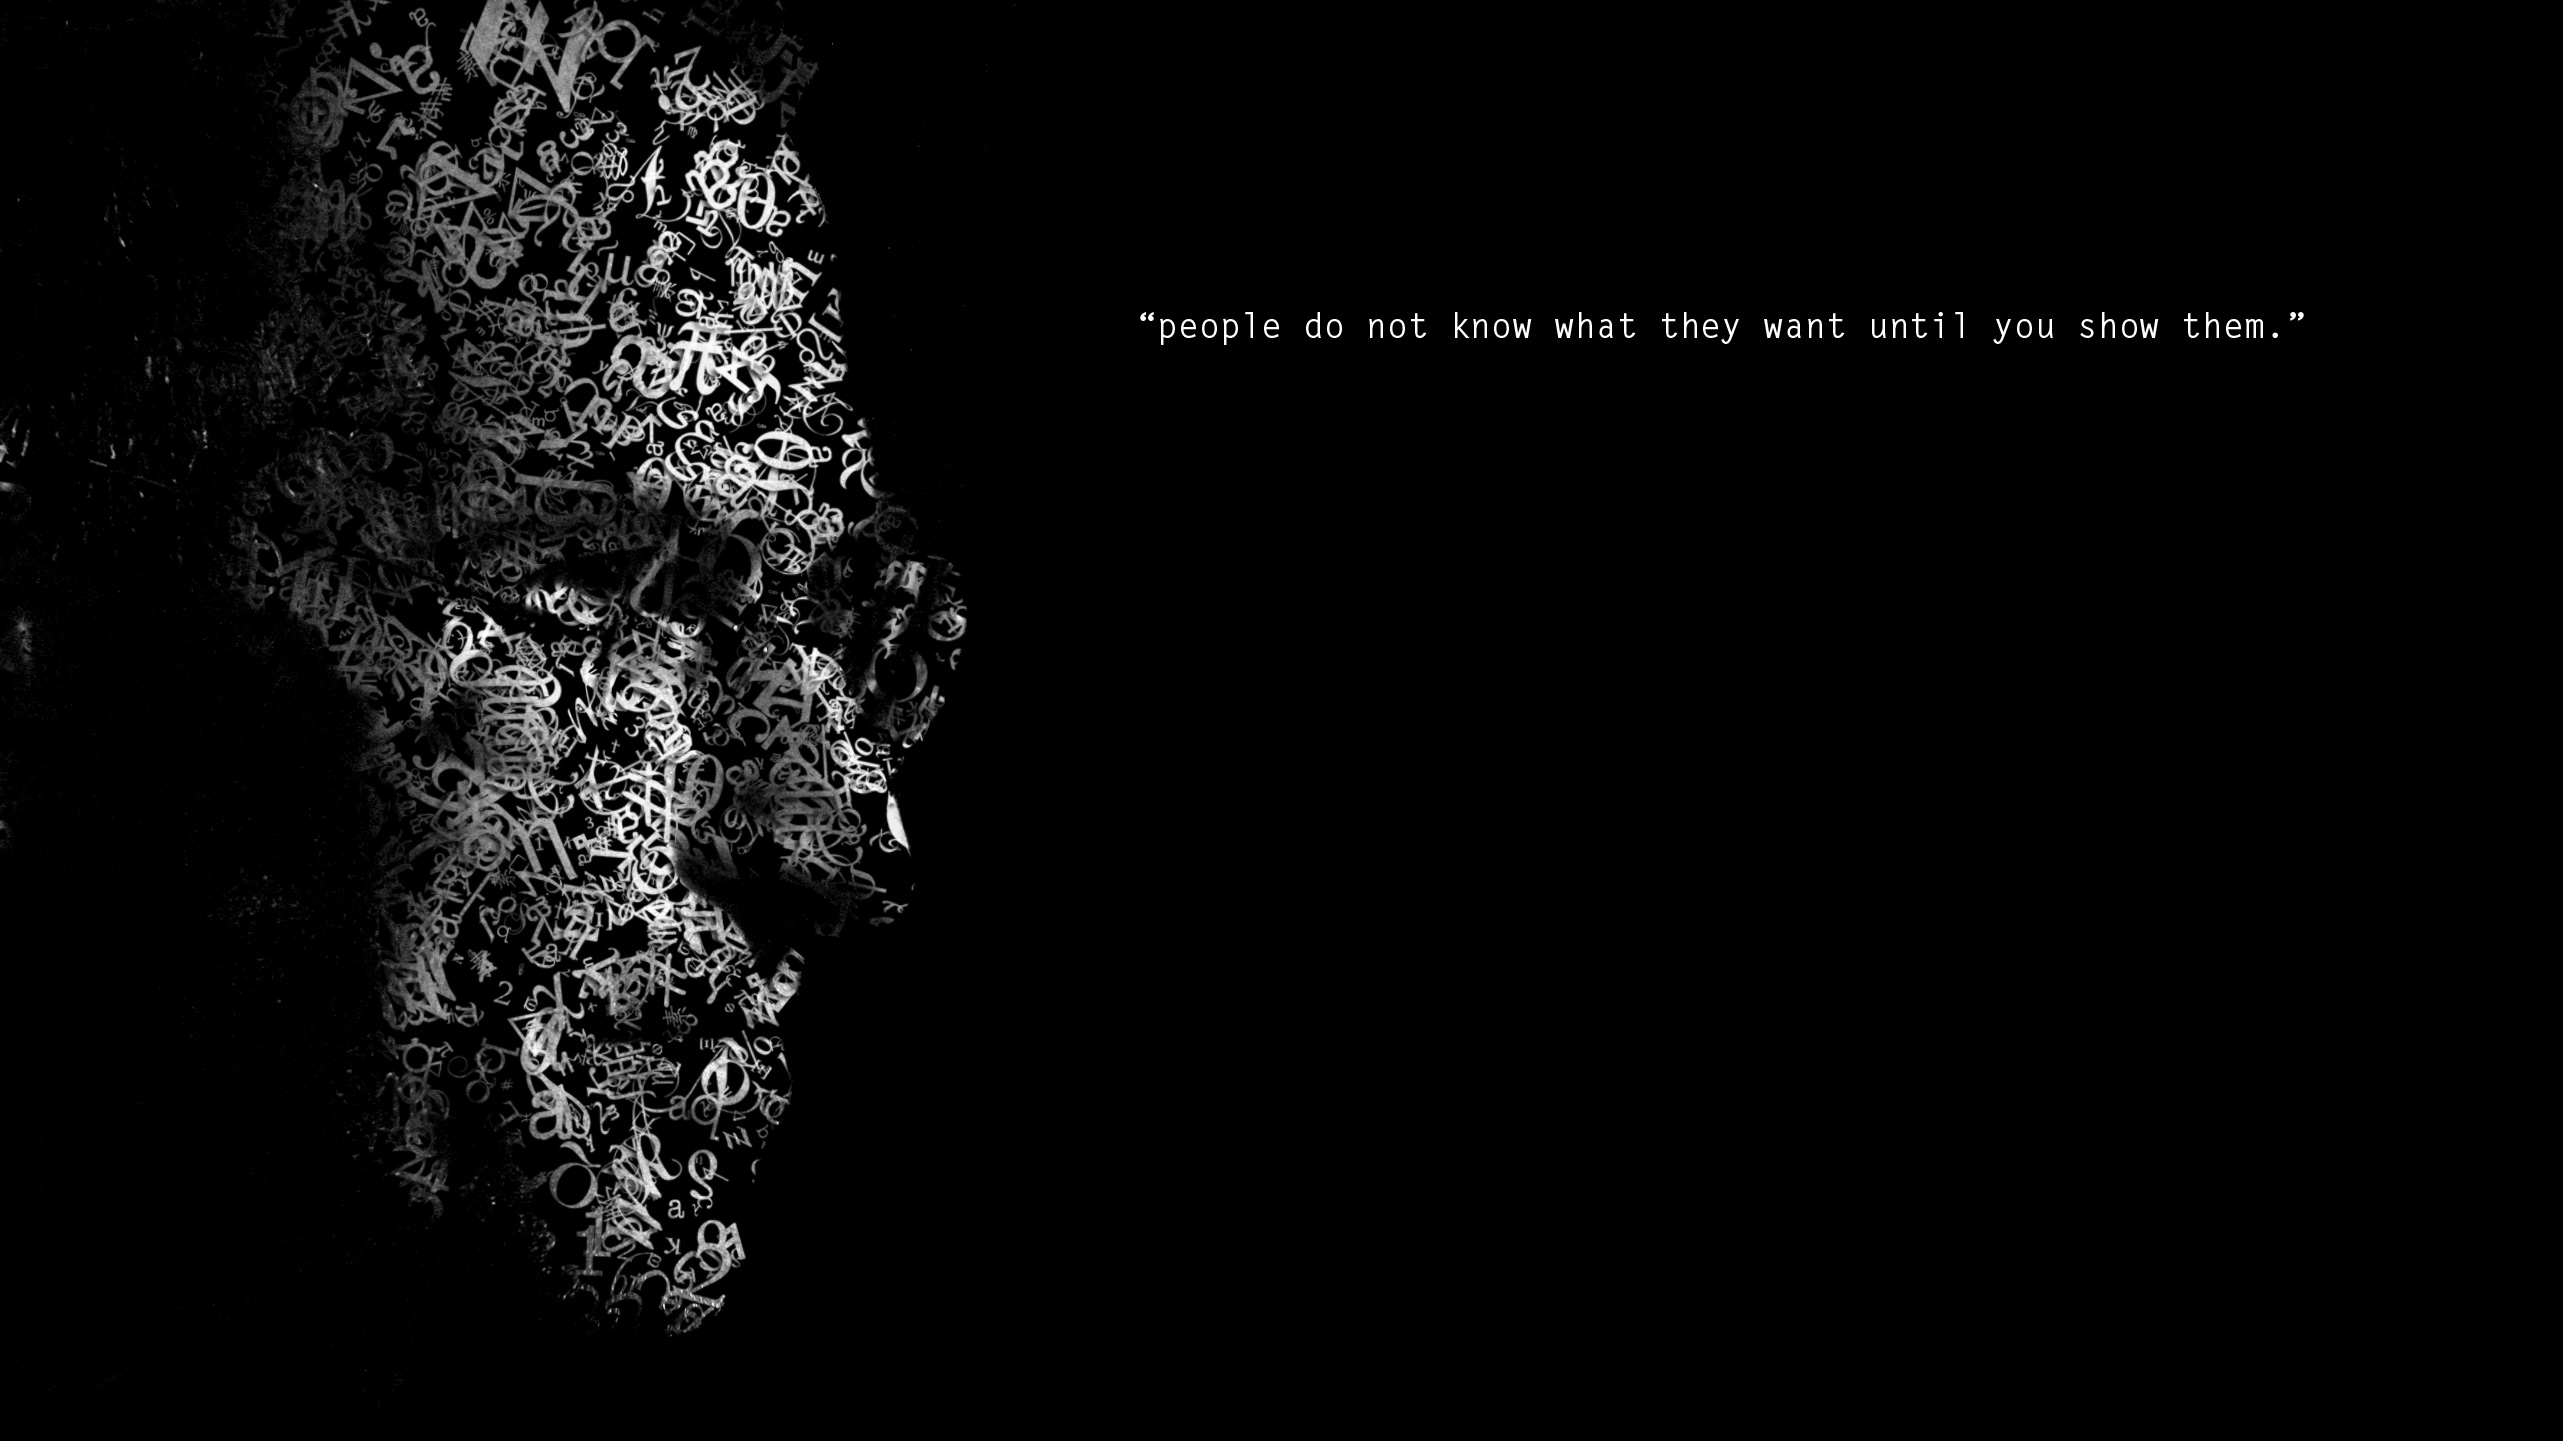 Hd Quote Wallpapers For Laptop Wallpapers Of The Week Sunny Clouds And Steve Jobs